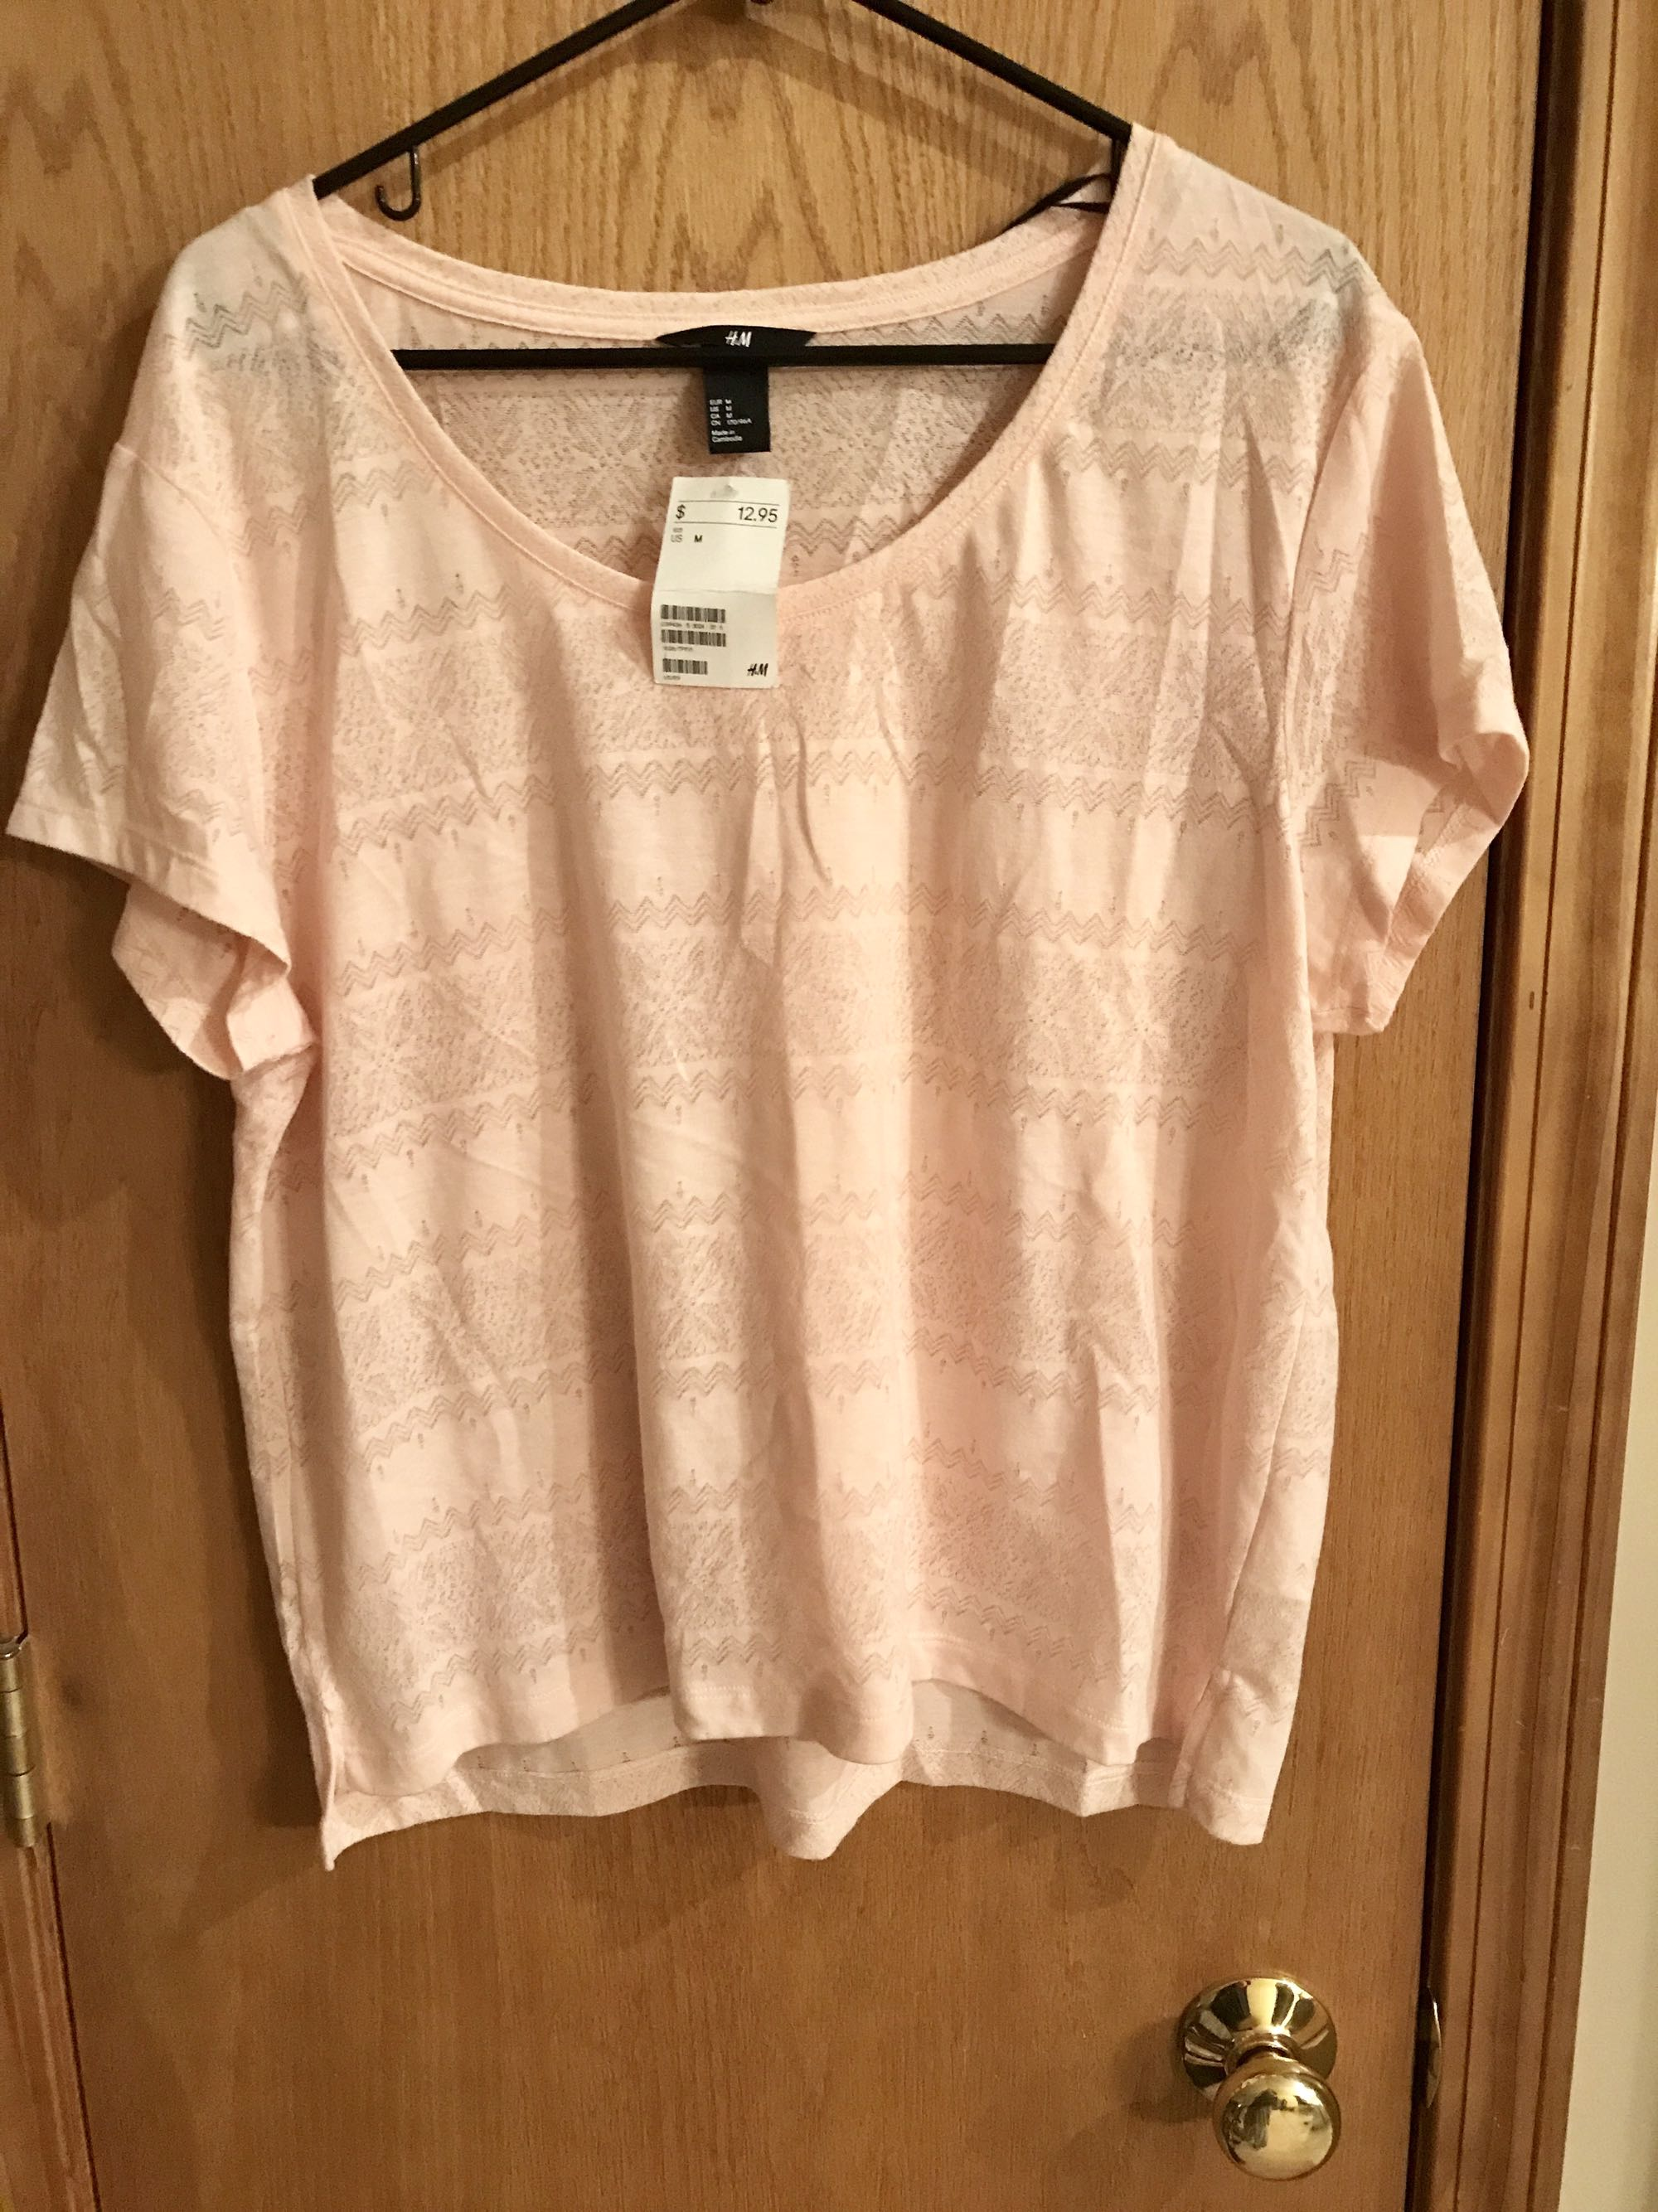 H&M brand top, new with tags, medium